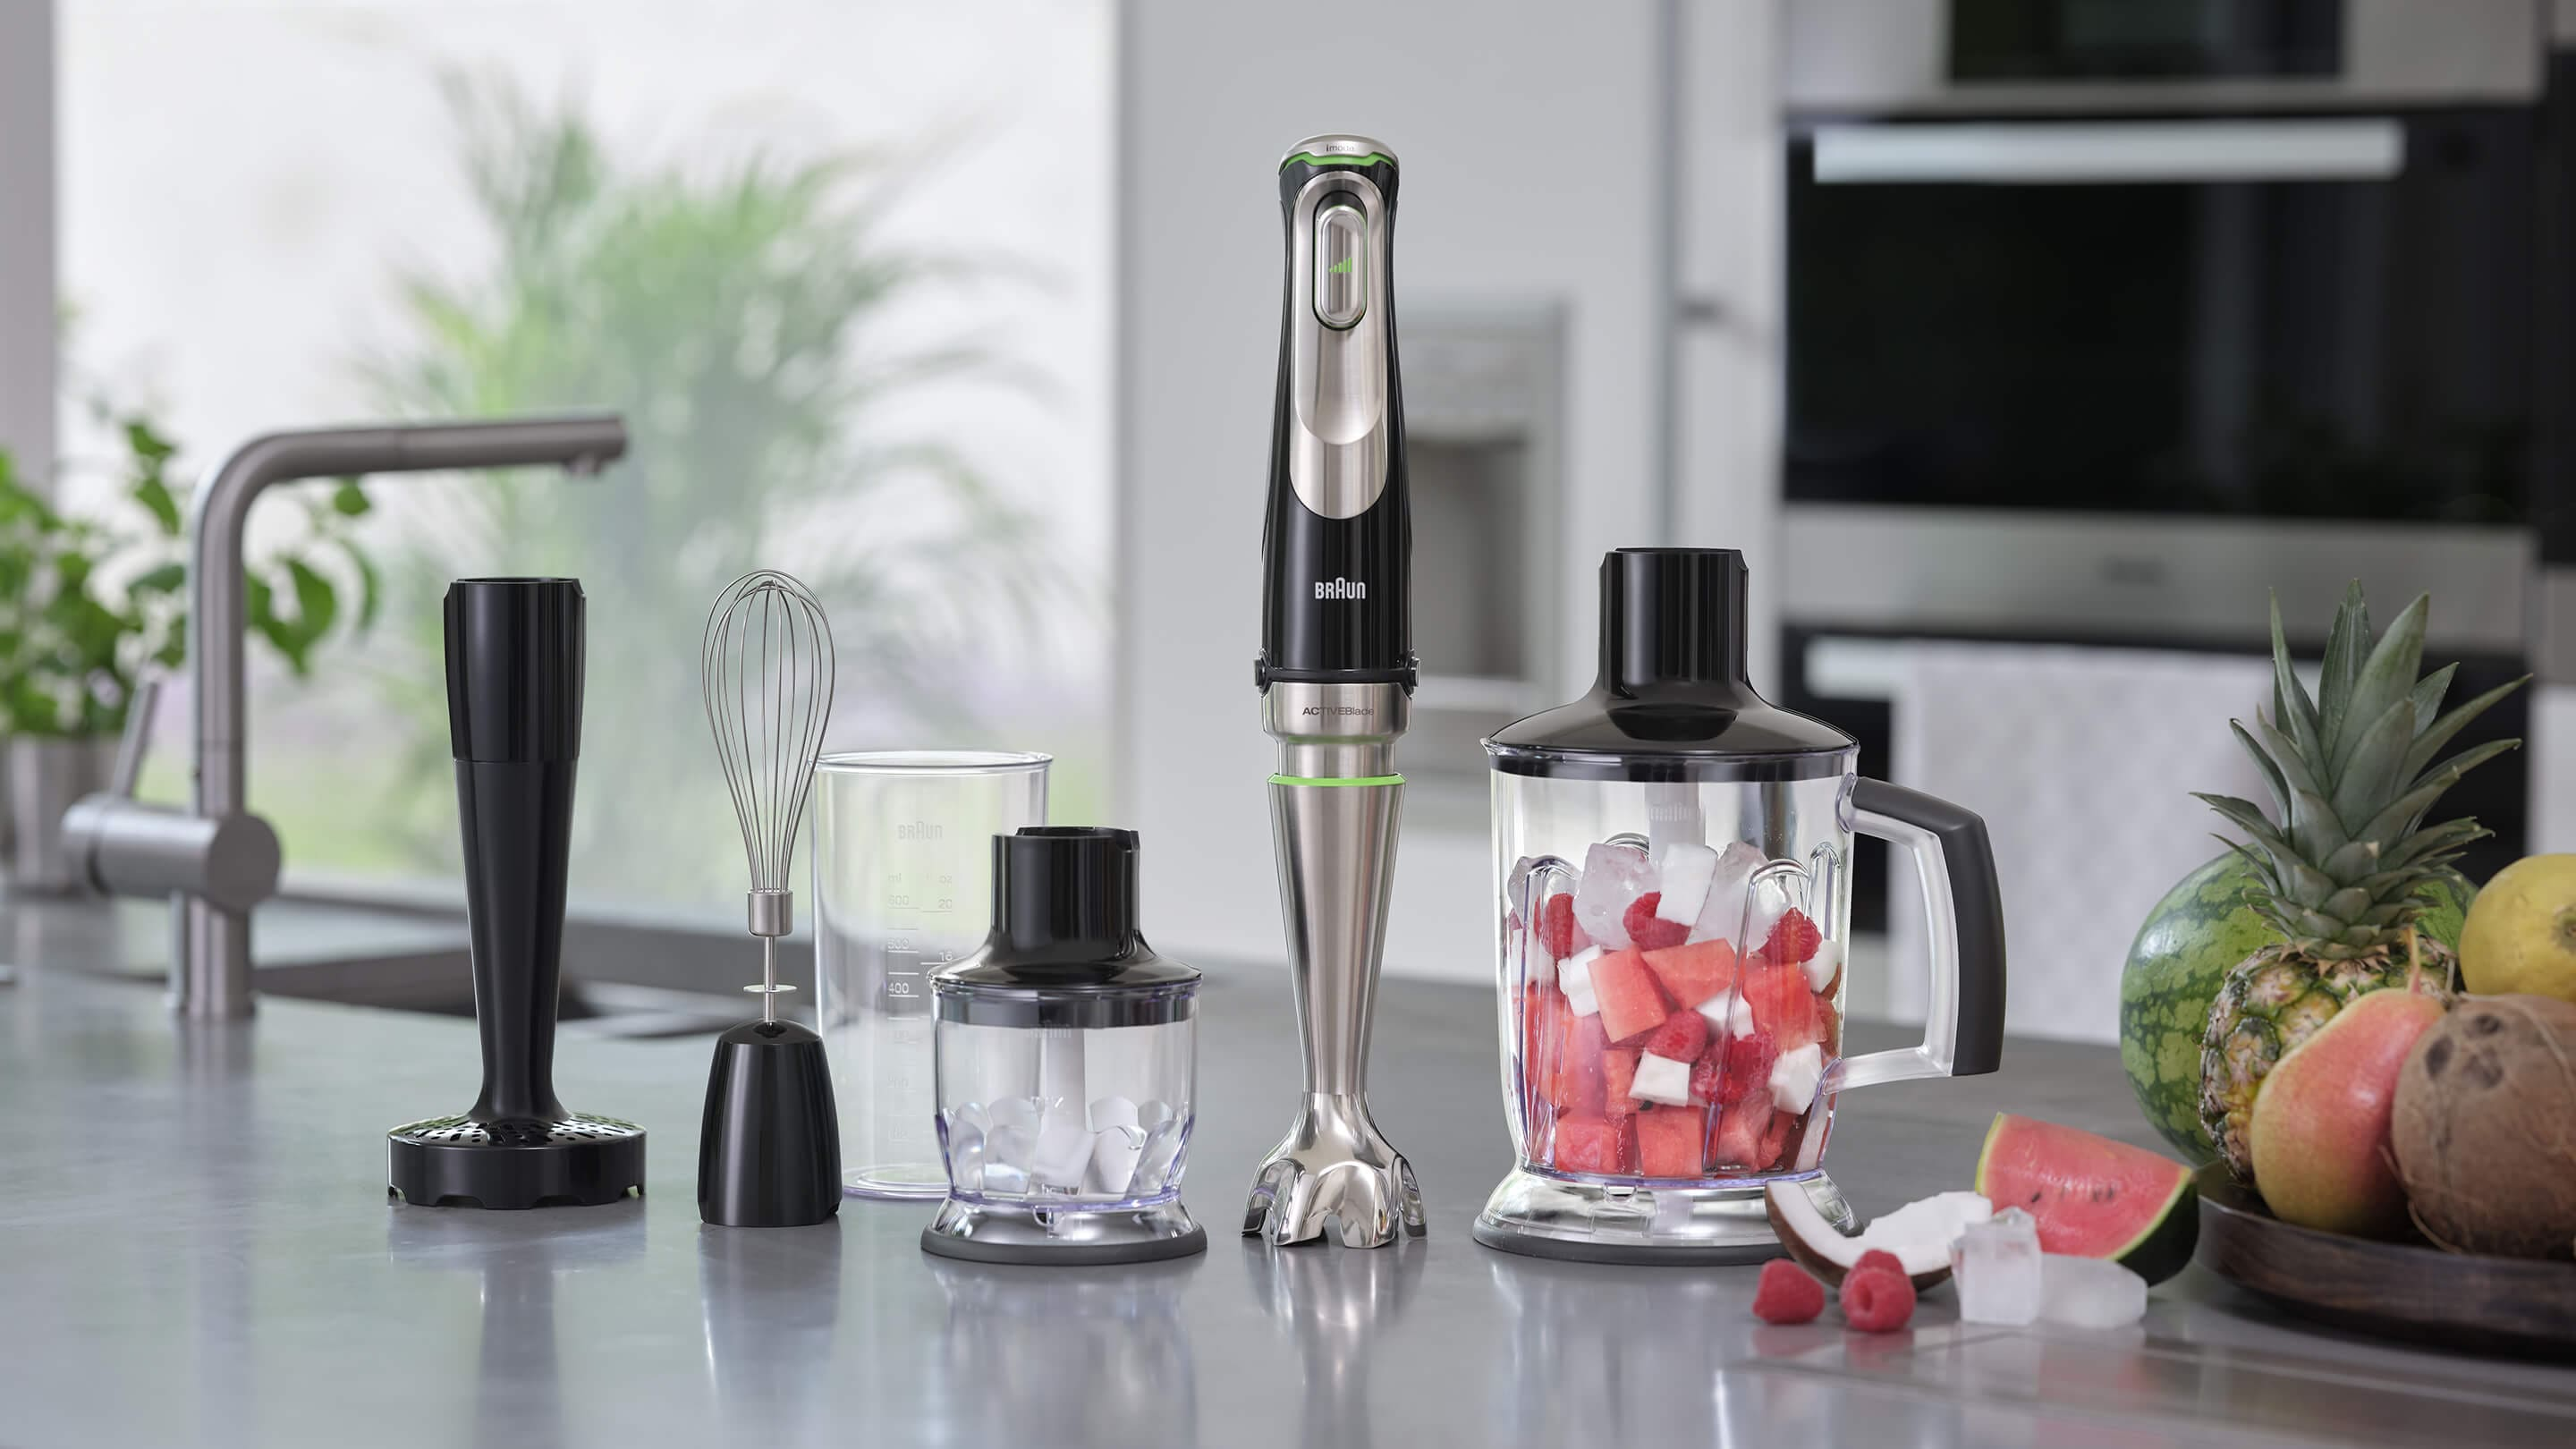 Braun MultiQuick 9X Hand blender in use